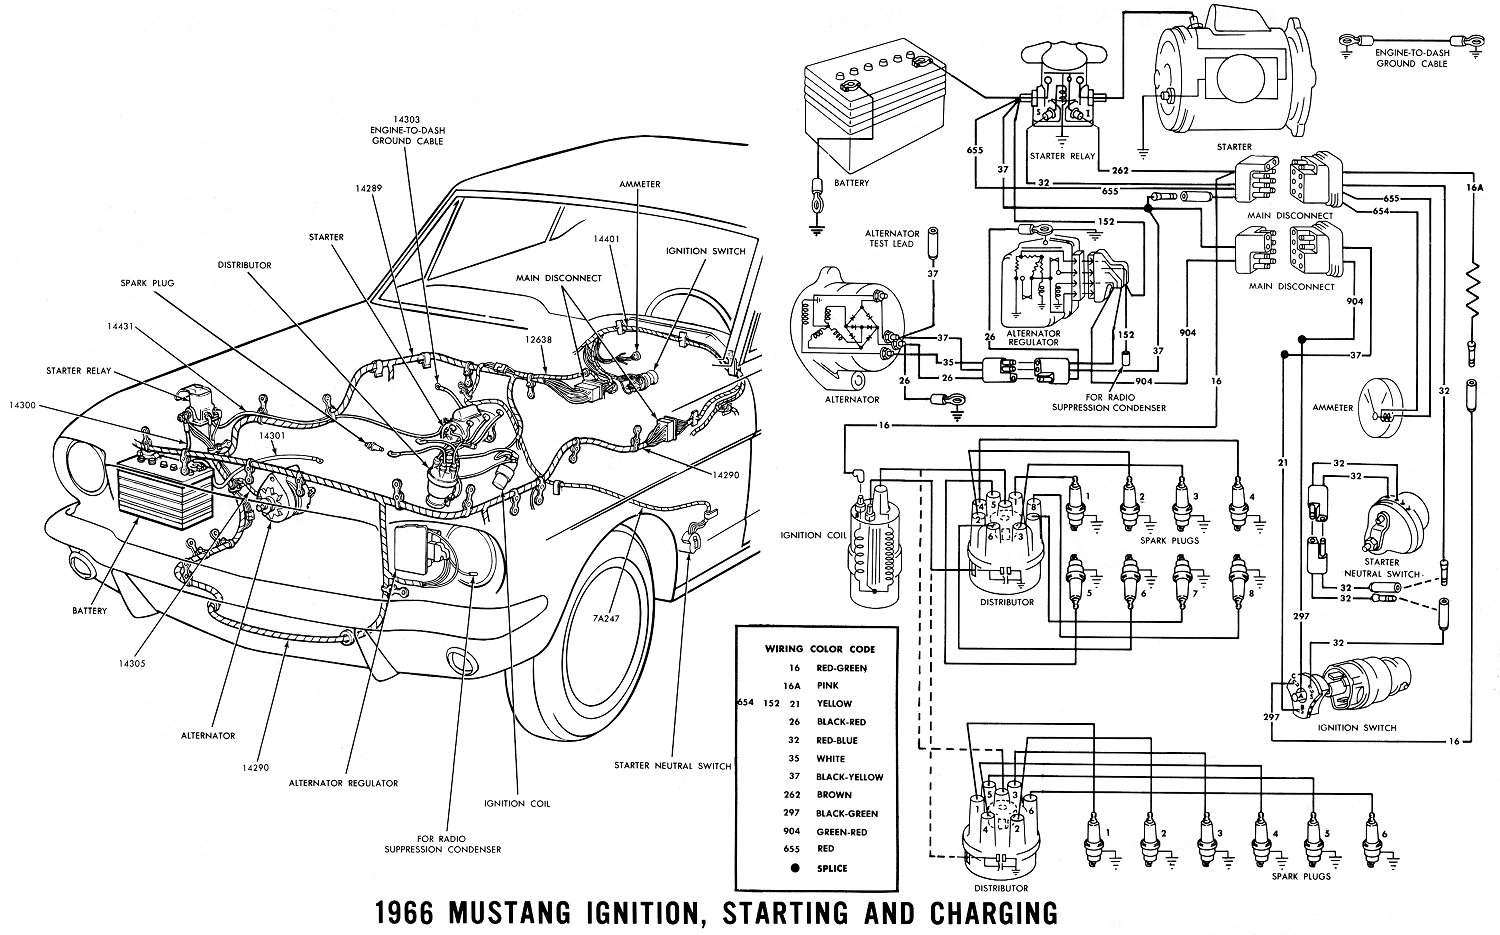 66ignit 1966 mustang wiring diagrams average joe restoration 1967 Mustang Wiring Schematic at crackthecode.co